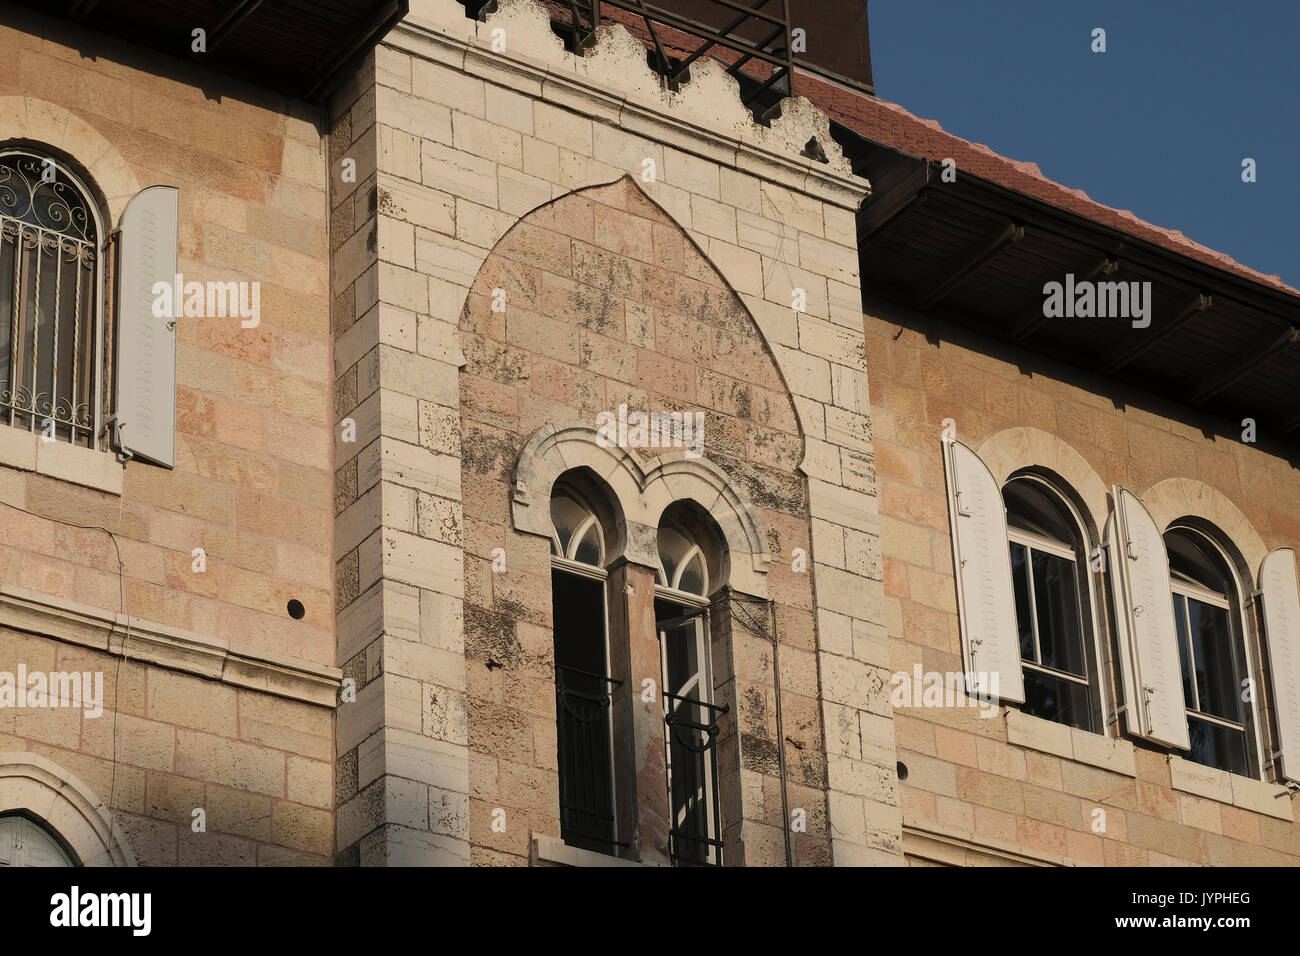 Facade of the former Arab building of Dajani family located in 10 Klein street in Katamon or Qatamon neighborhood Stock Photo